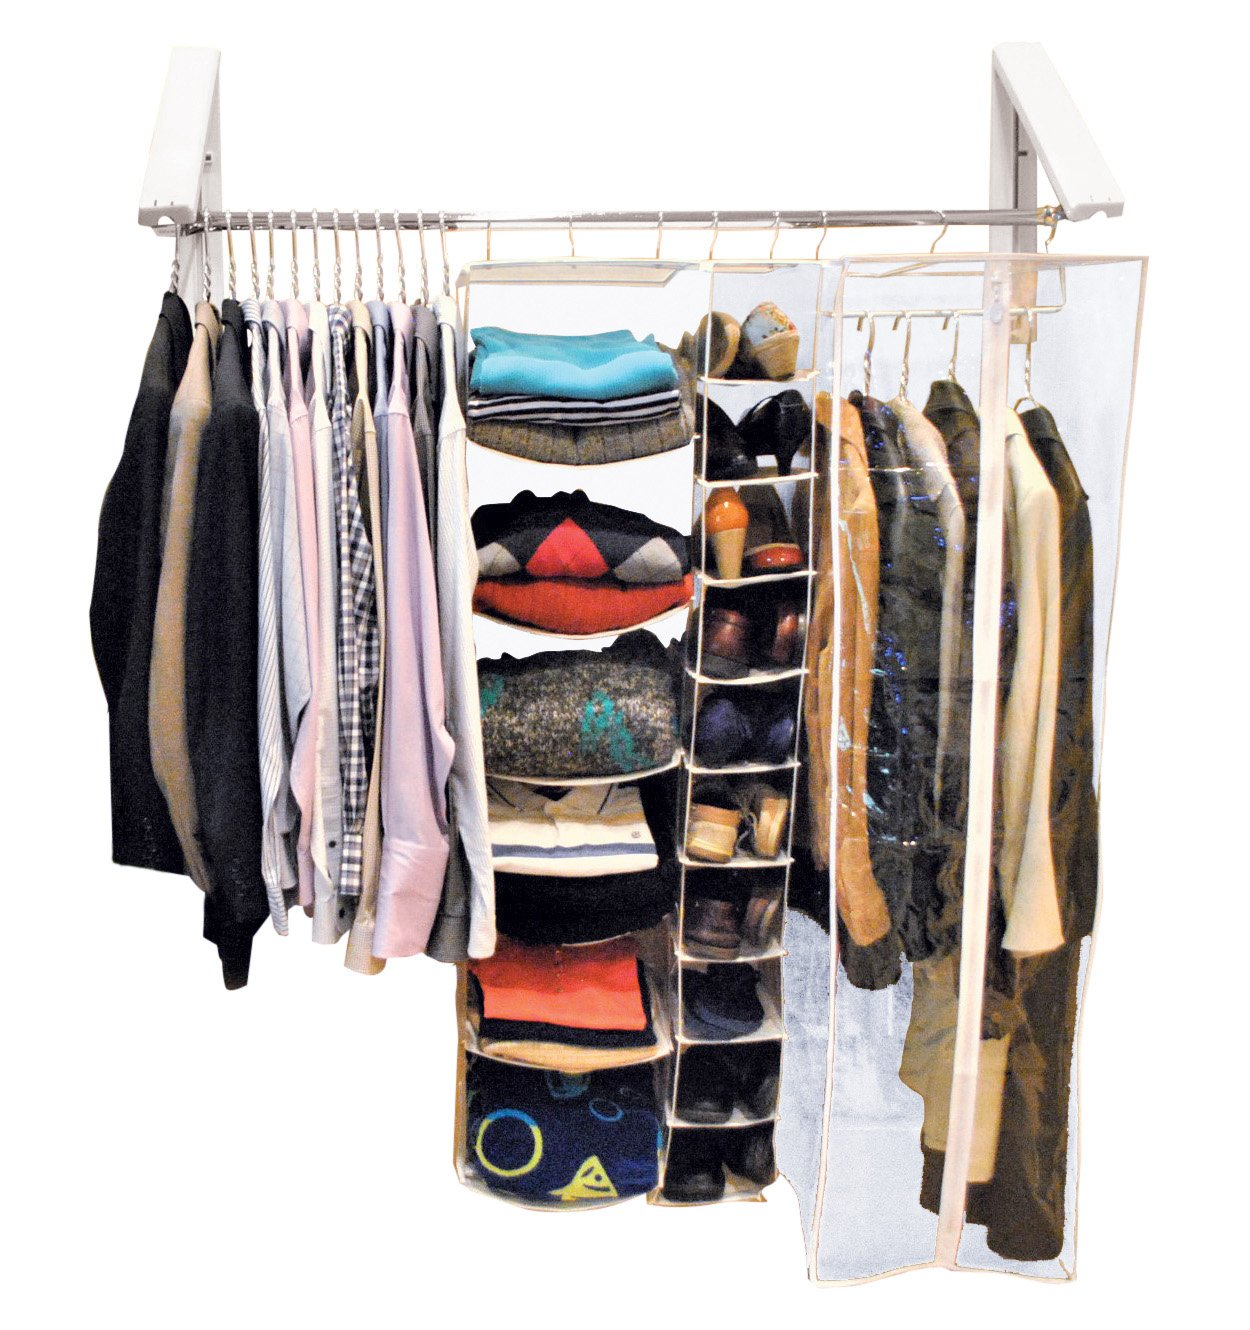 QuikCLOSET The Original Wardrobe Organizer, Collapsible Drying Rack, Mounted Clothes Holder